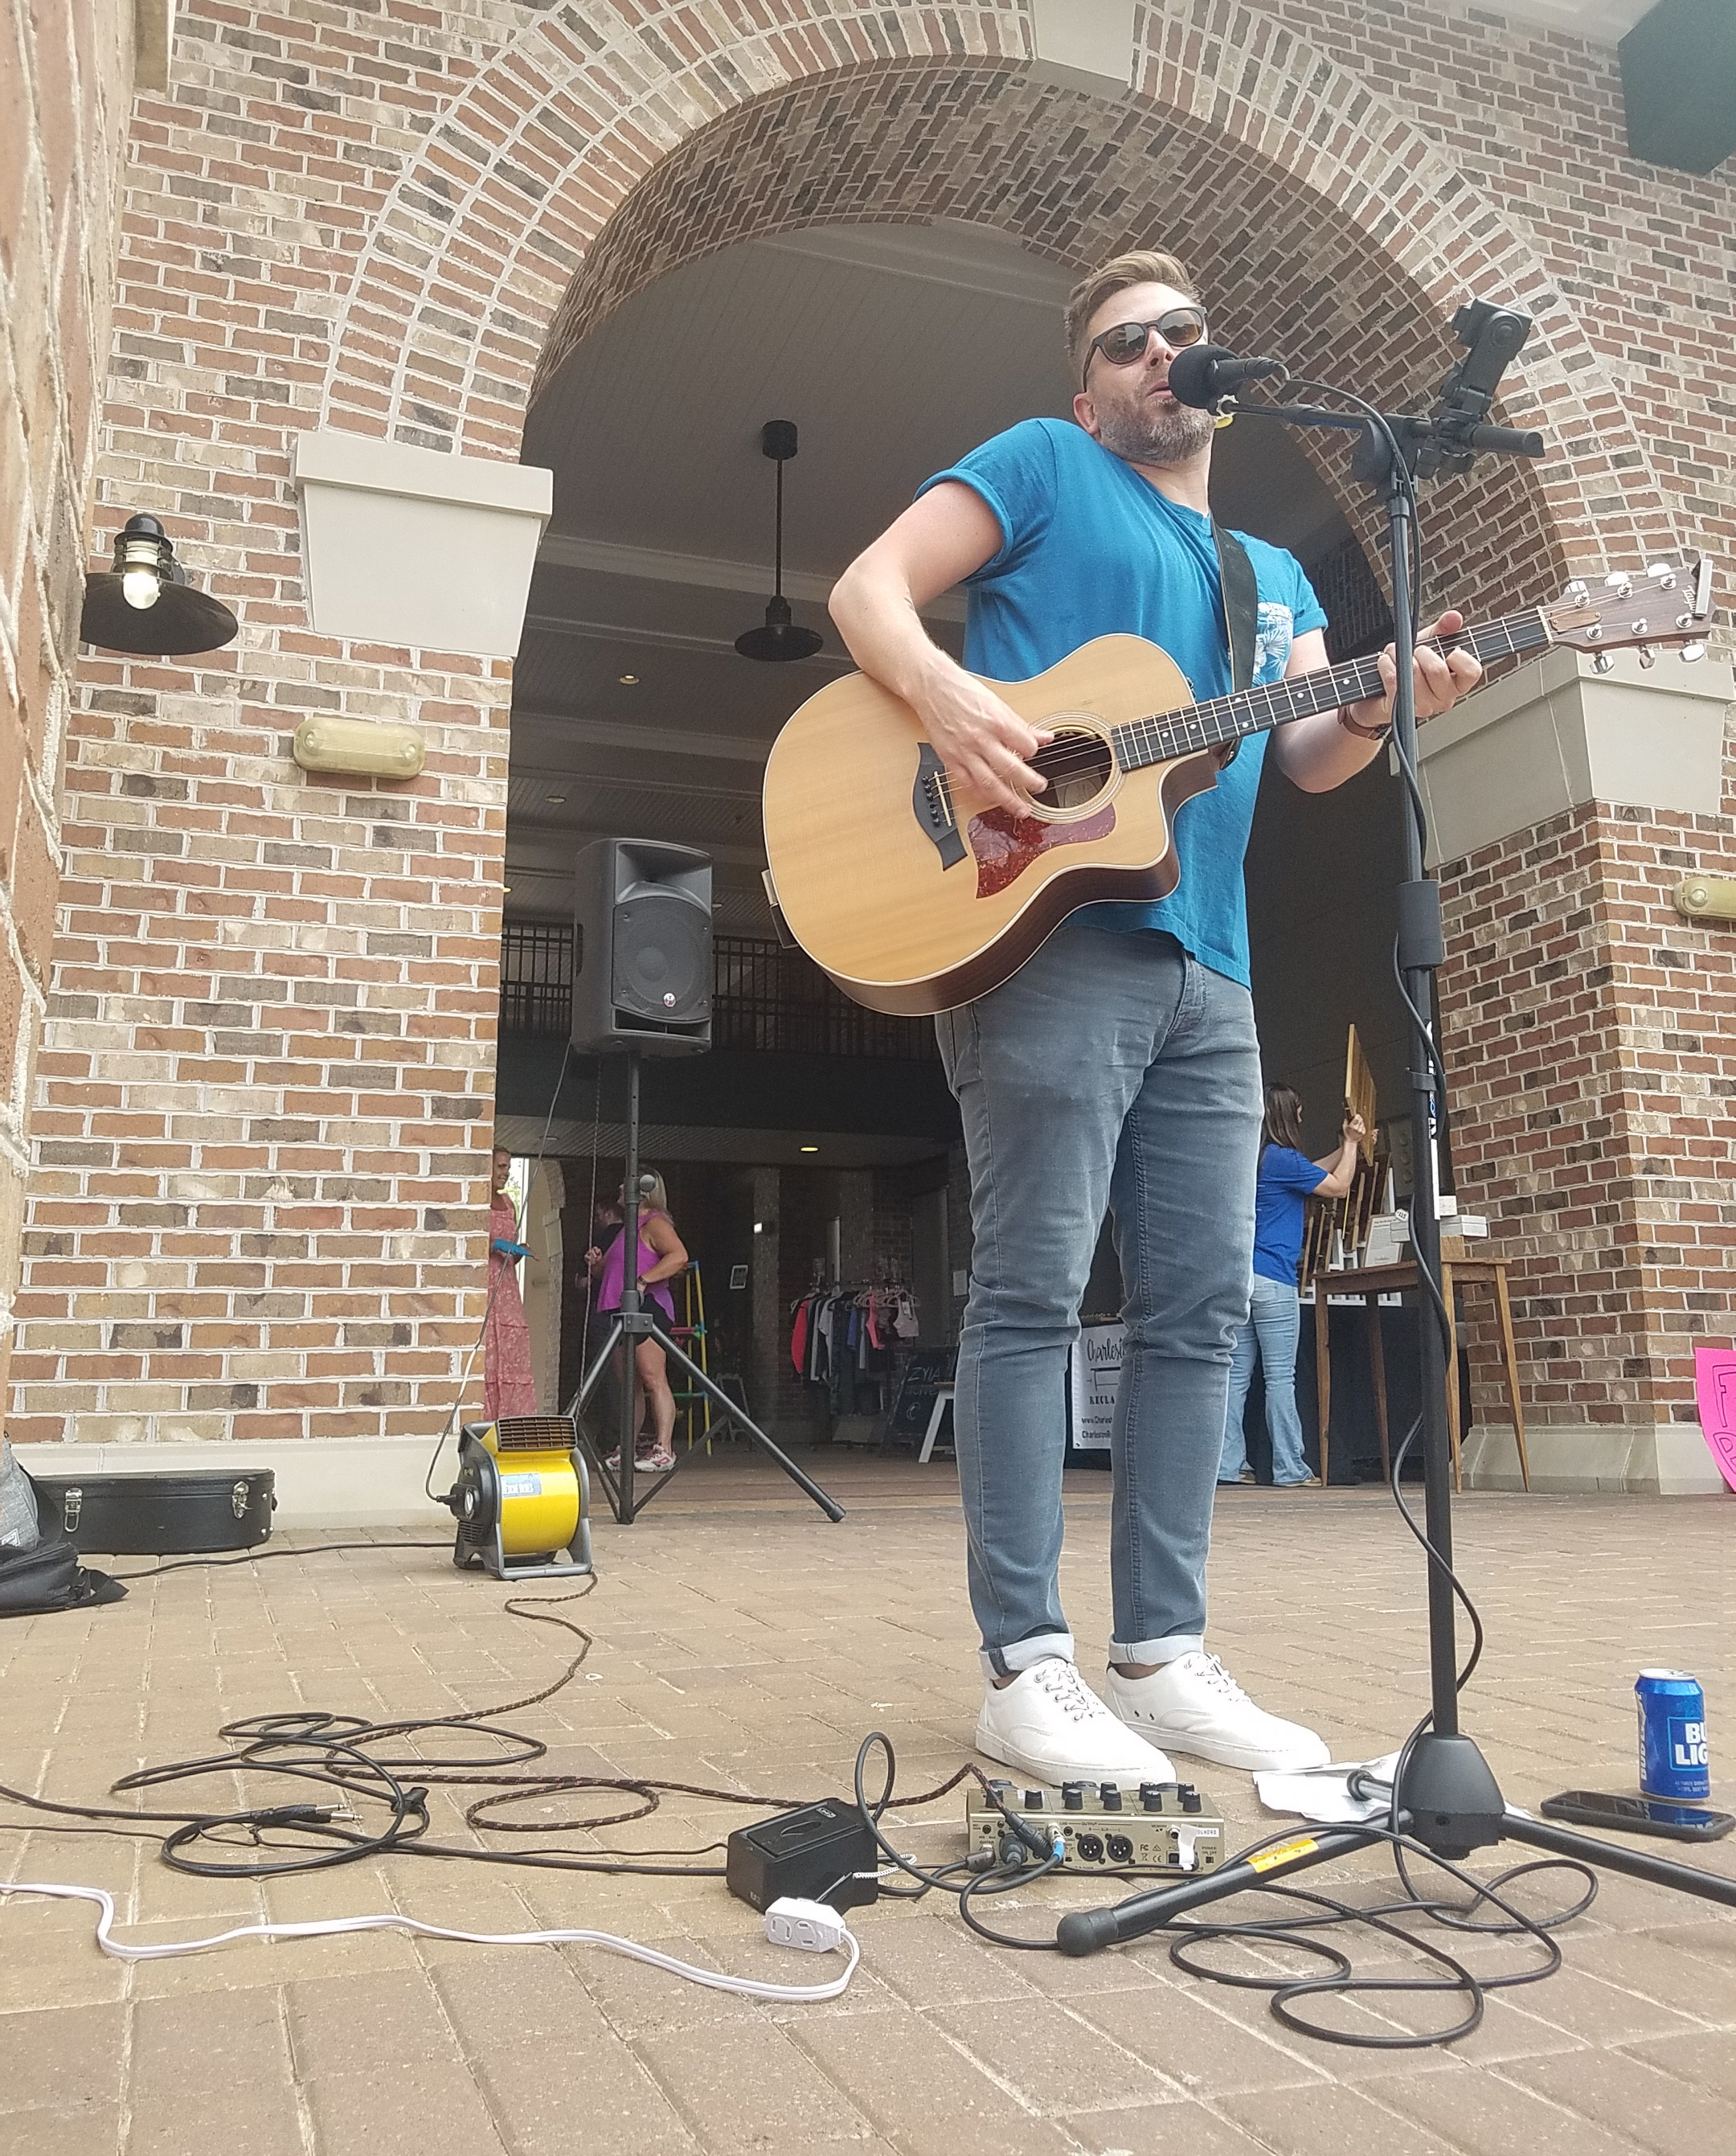 Suzanne Detar - Bennett Colemen entertained the crowd with his musical talents.